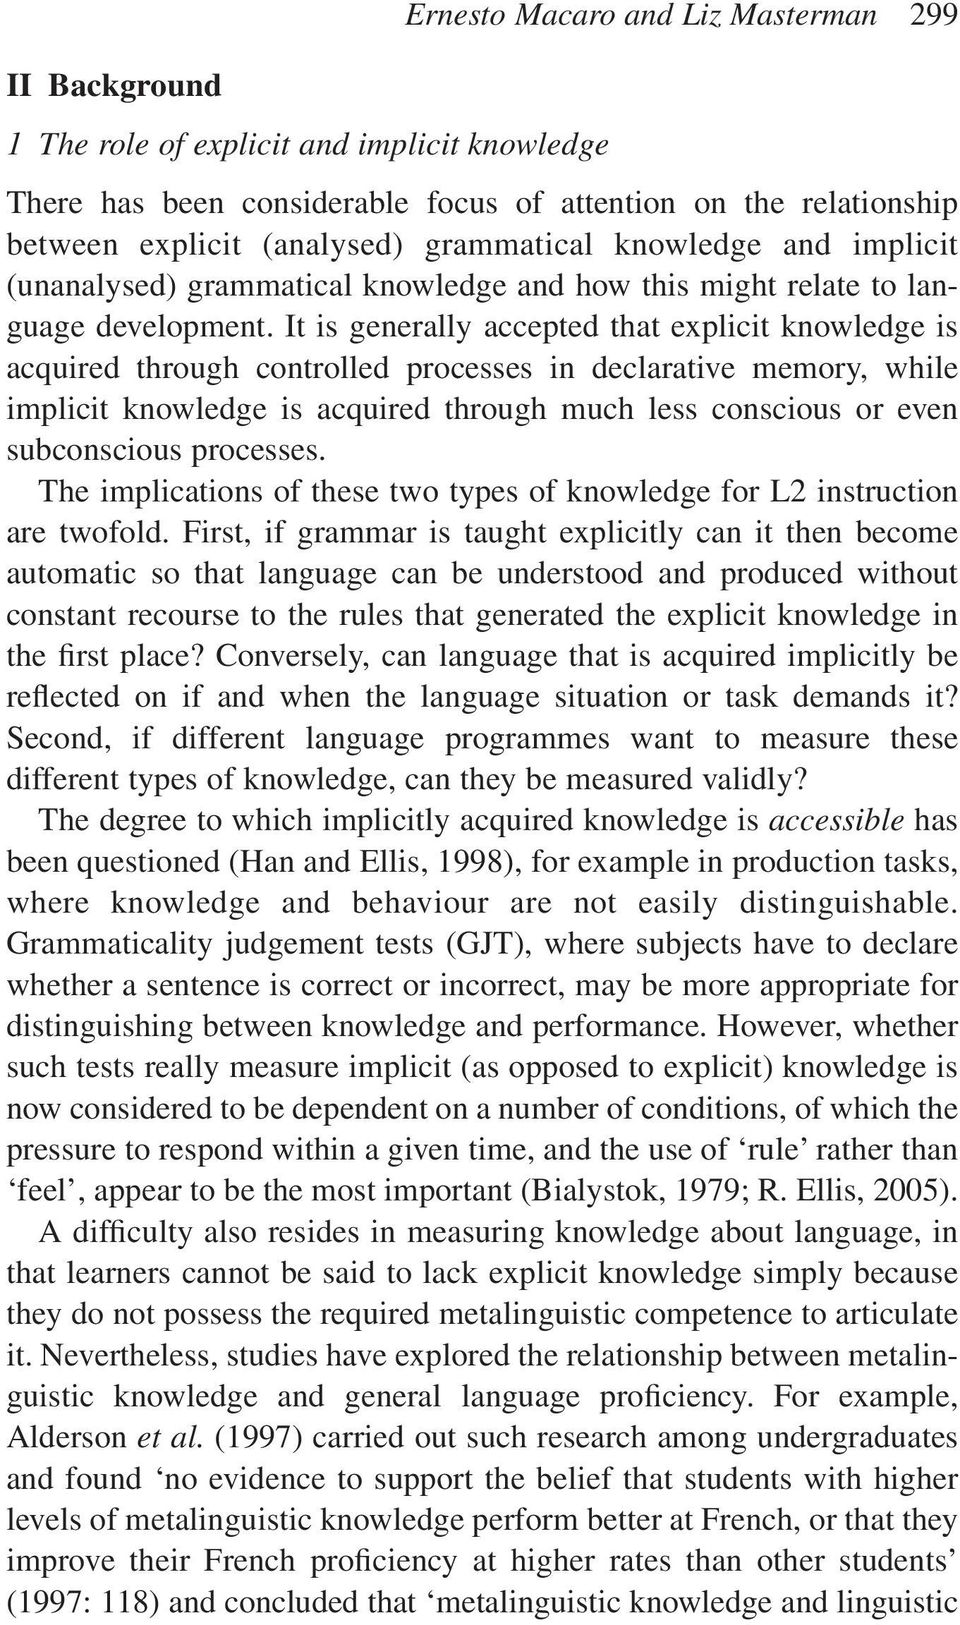 It is generally accepted that explicit knowledge is acquired through controlled processes in declarative memory, while implicit knowledge is acquired through much less conscious or even subconscious